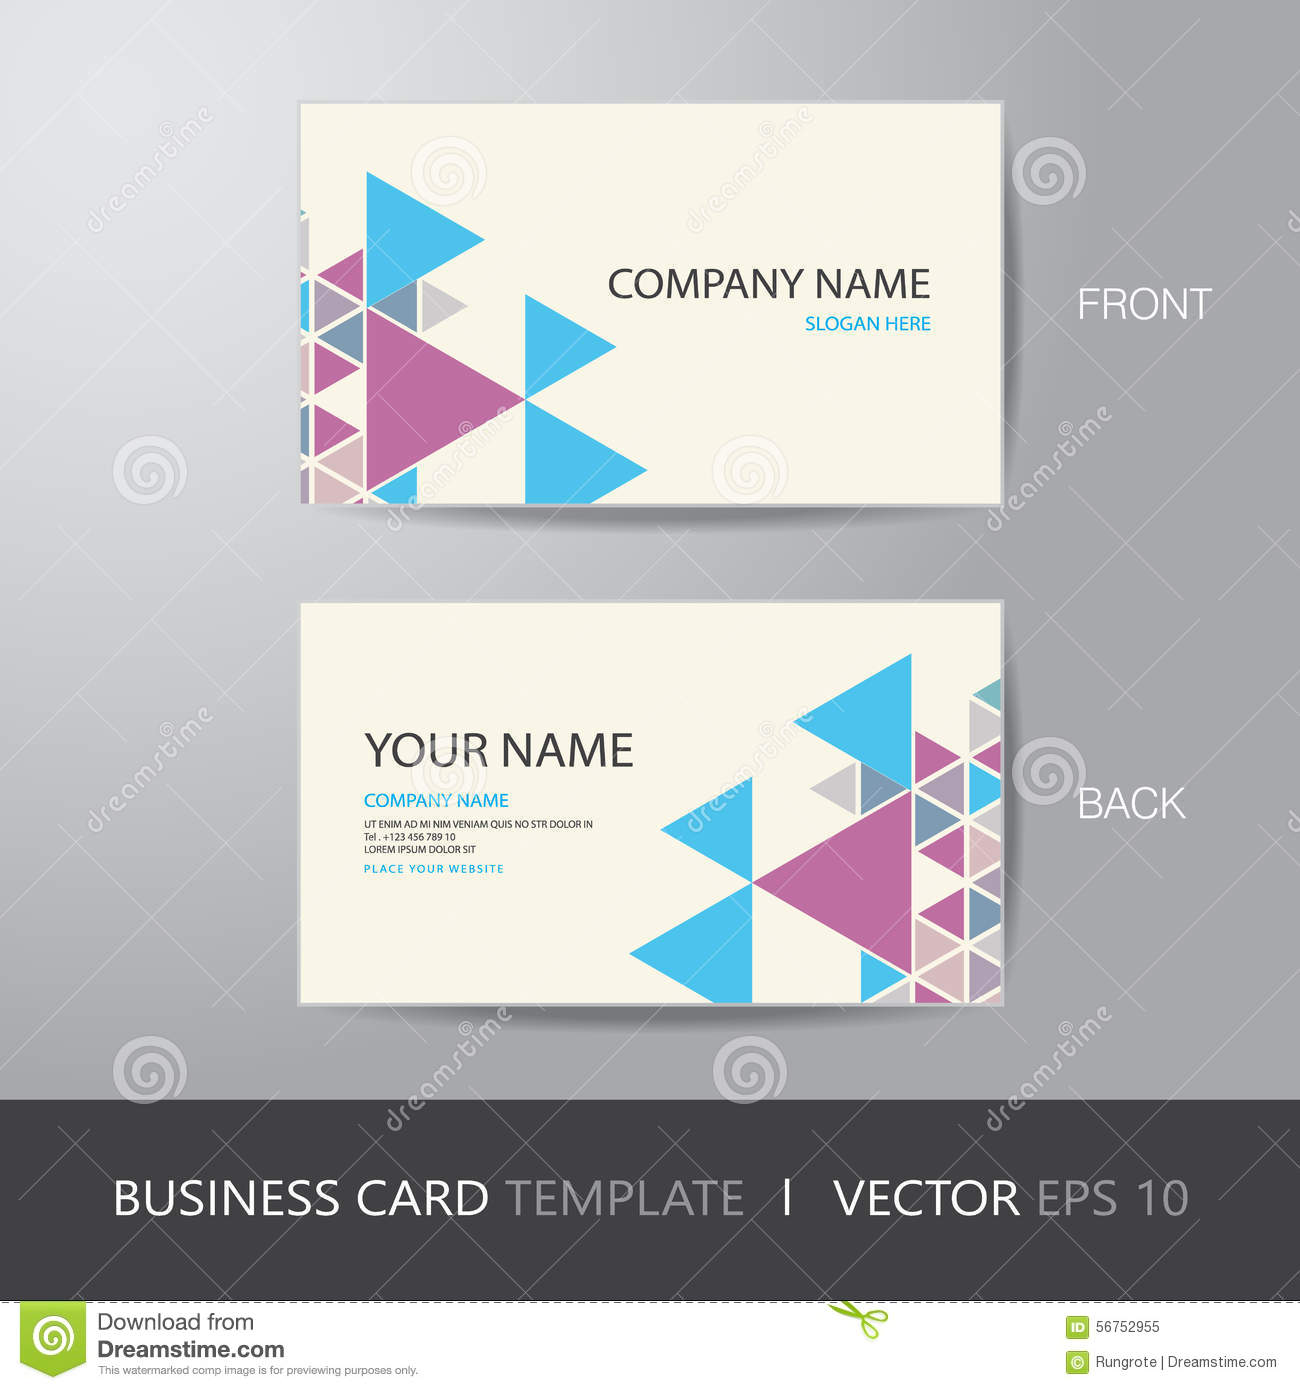 Business card background template gidiyedformapolitica business card background template fbccfo Gallery